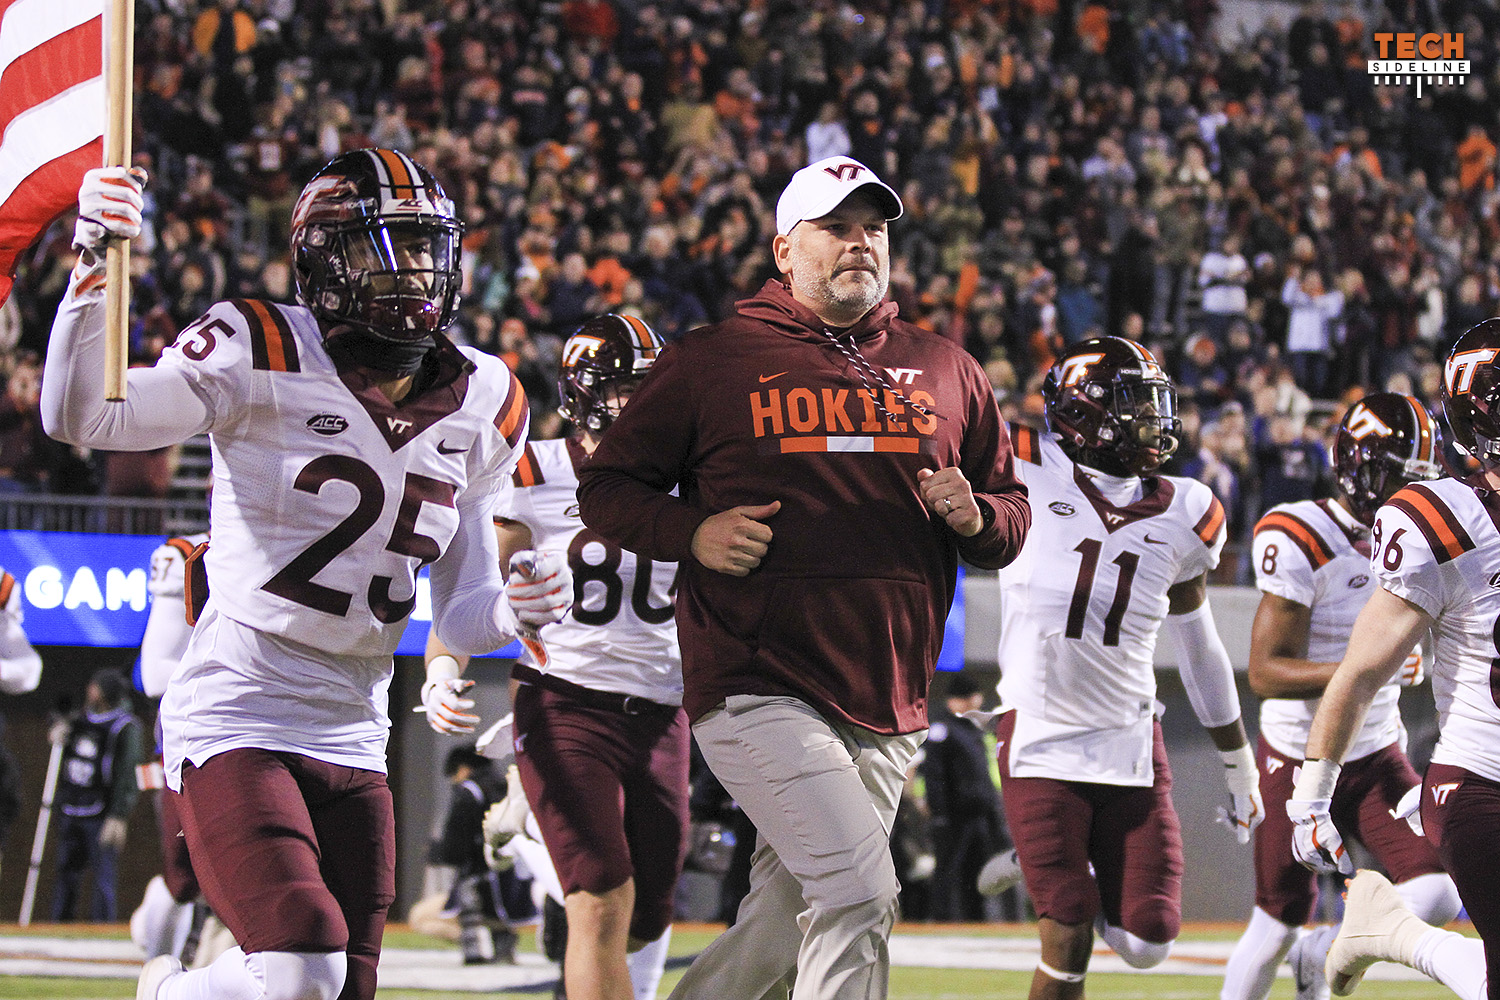 #22 VA Tech Will Face #18 Oklahoma State in Camping World Bowl